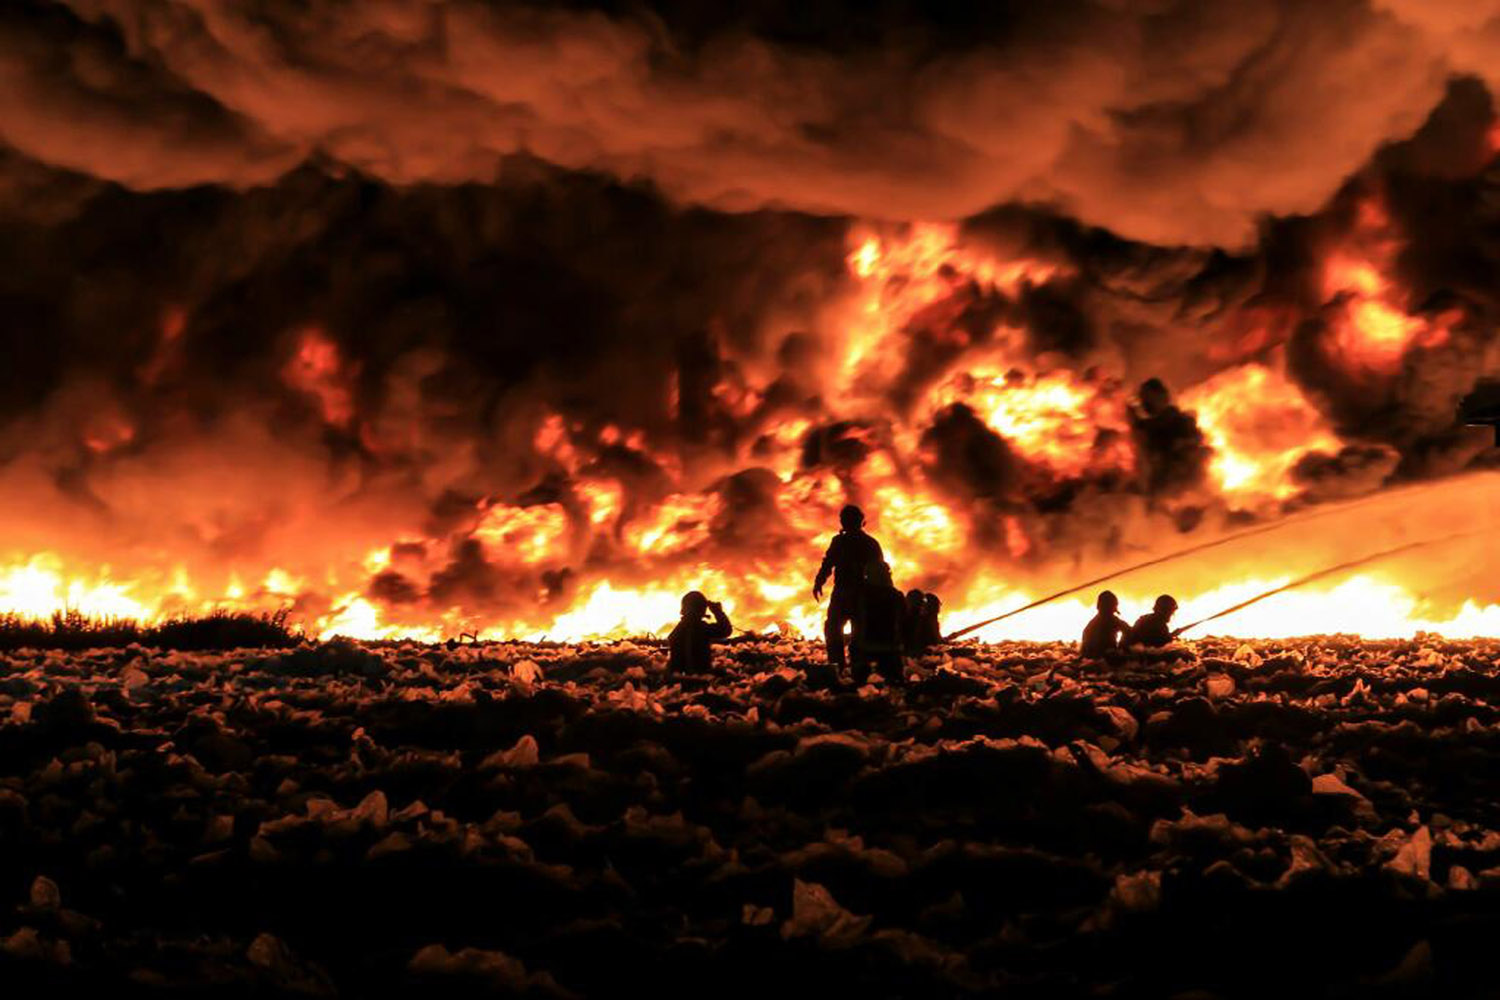 July 1, 2013. Firefighters tackle a large blaze at a recycling center in Smethwick, near Birmingham, central England in a handout picture provided by the West Midlands Fire Service.